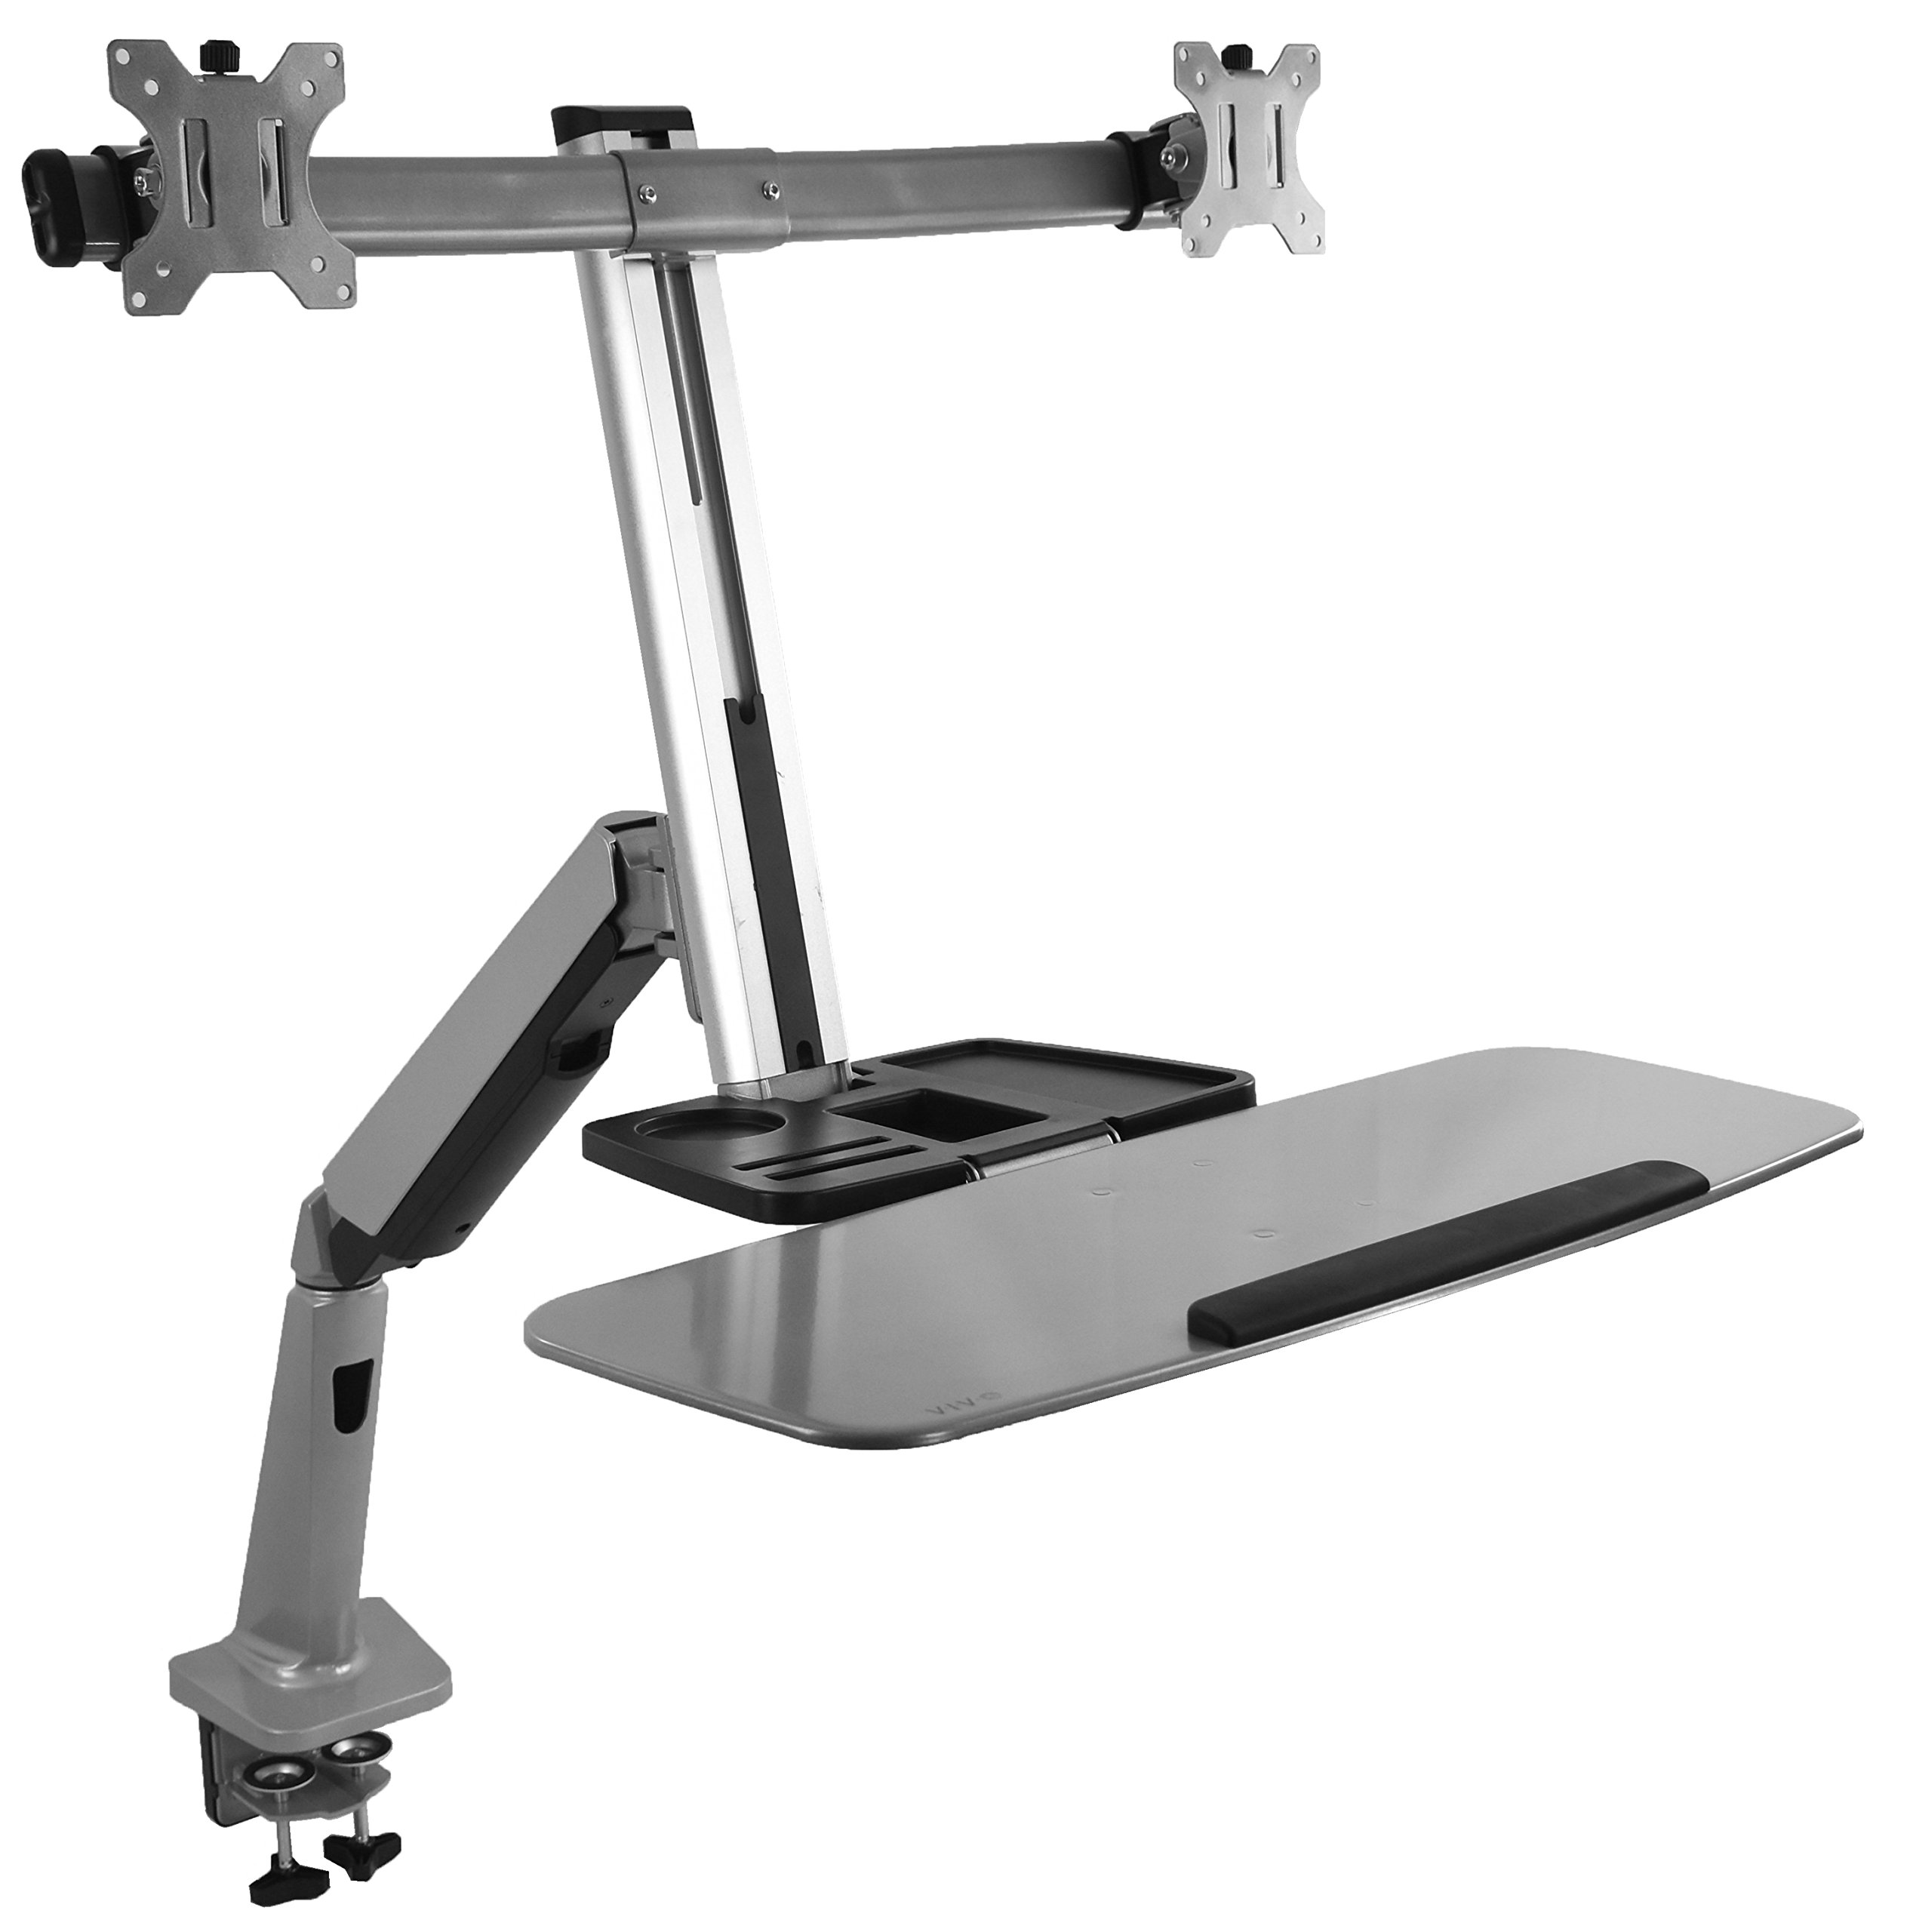 VIVO Dual Monitor & Keyboard Counterbalance Sit-Stand Desk Mount   Ergonomic Standing Transition Workstation for 13'' to 27'' Screens (STAND-SIT2S)